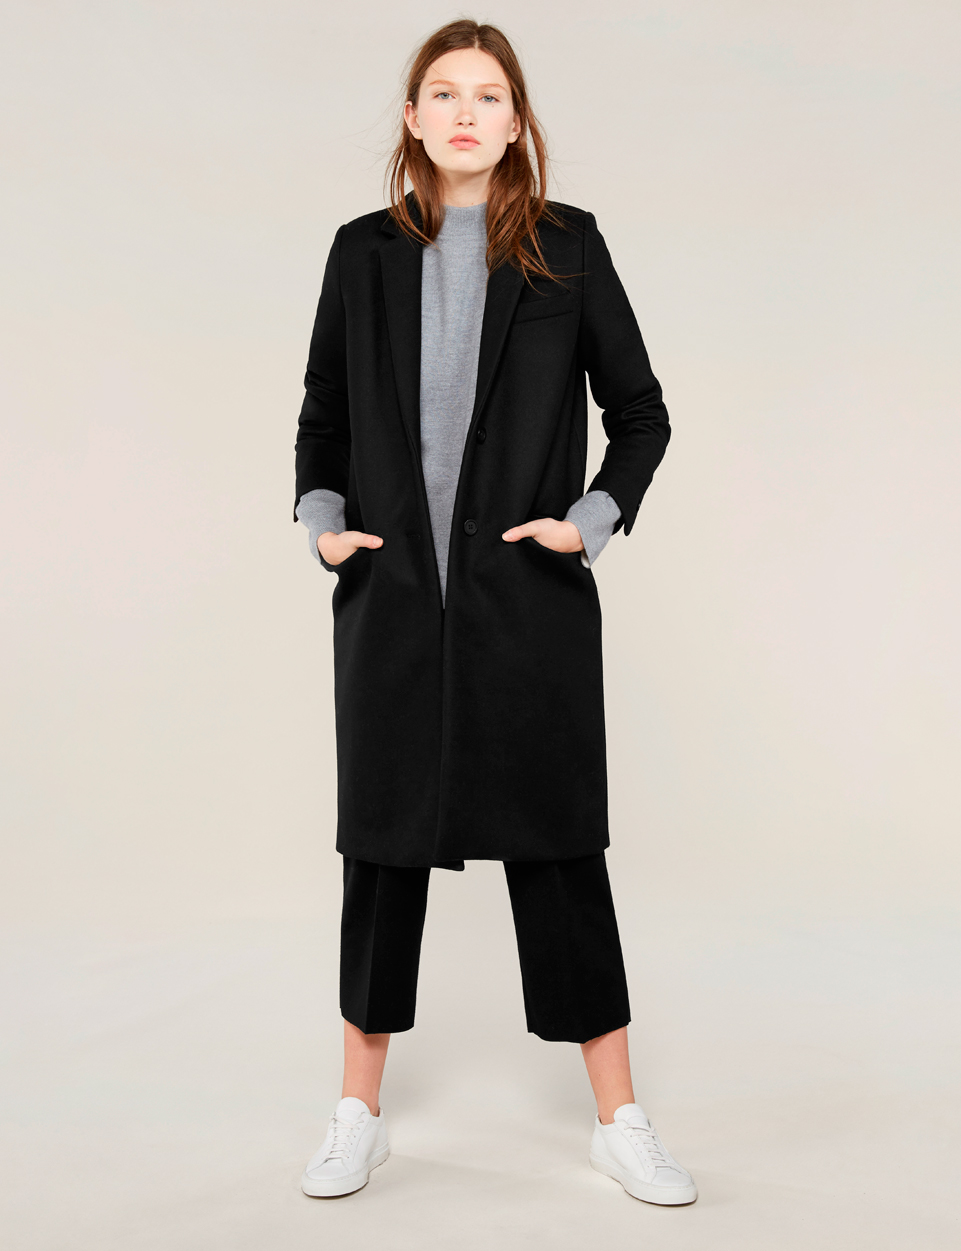 Women's Wool Coat - The Wool Overcoat | Everlane